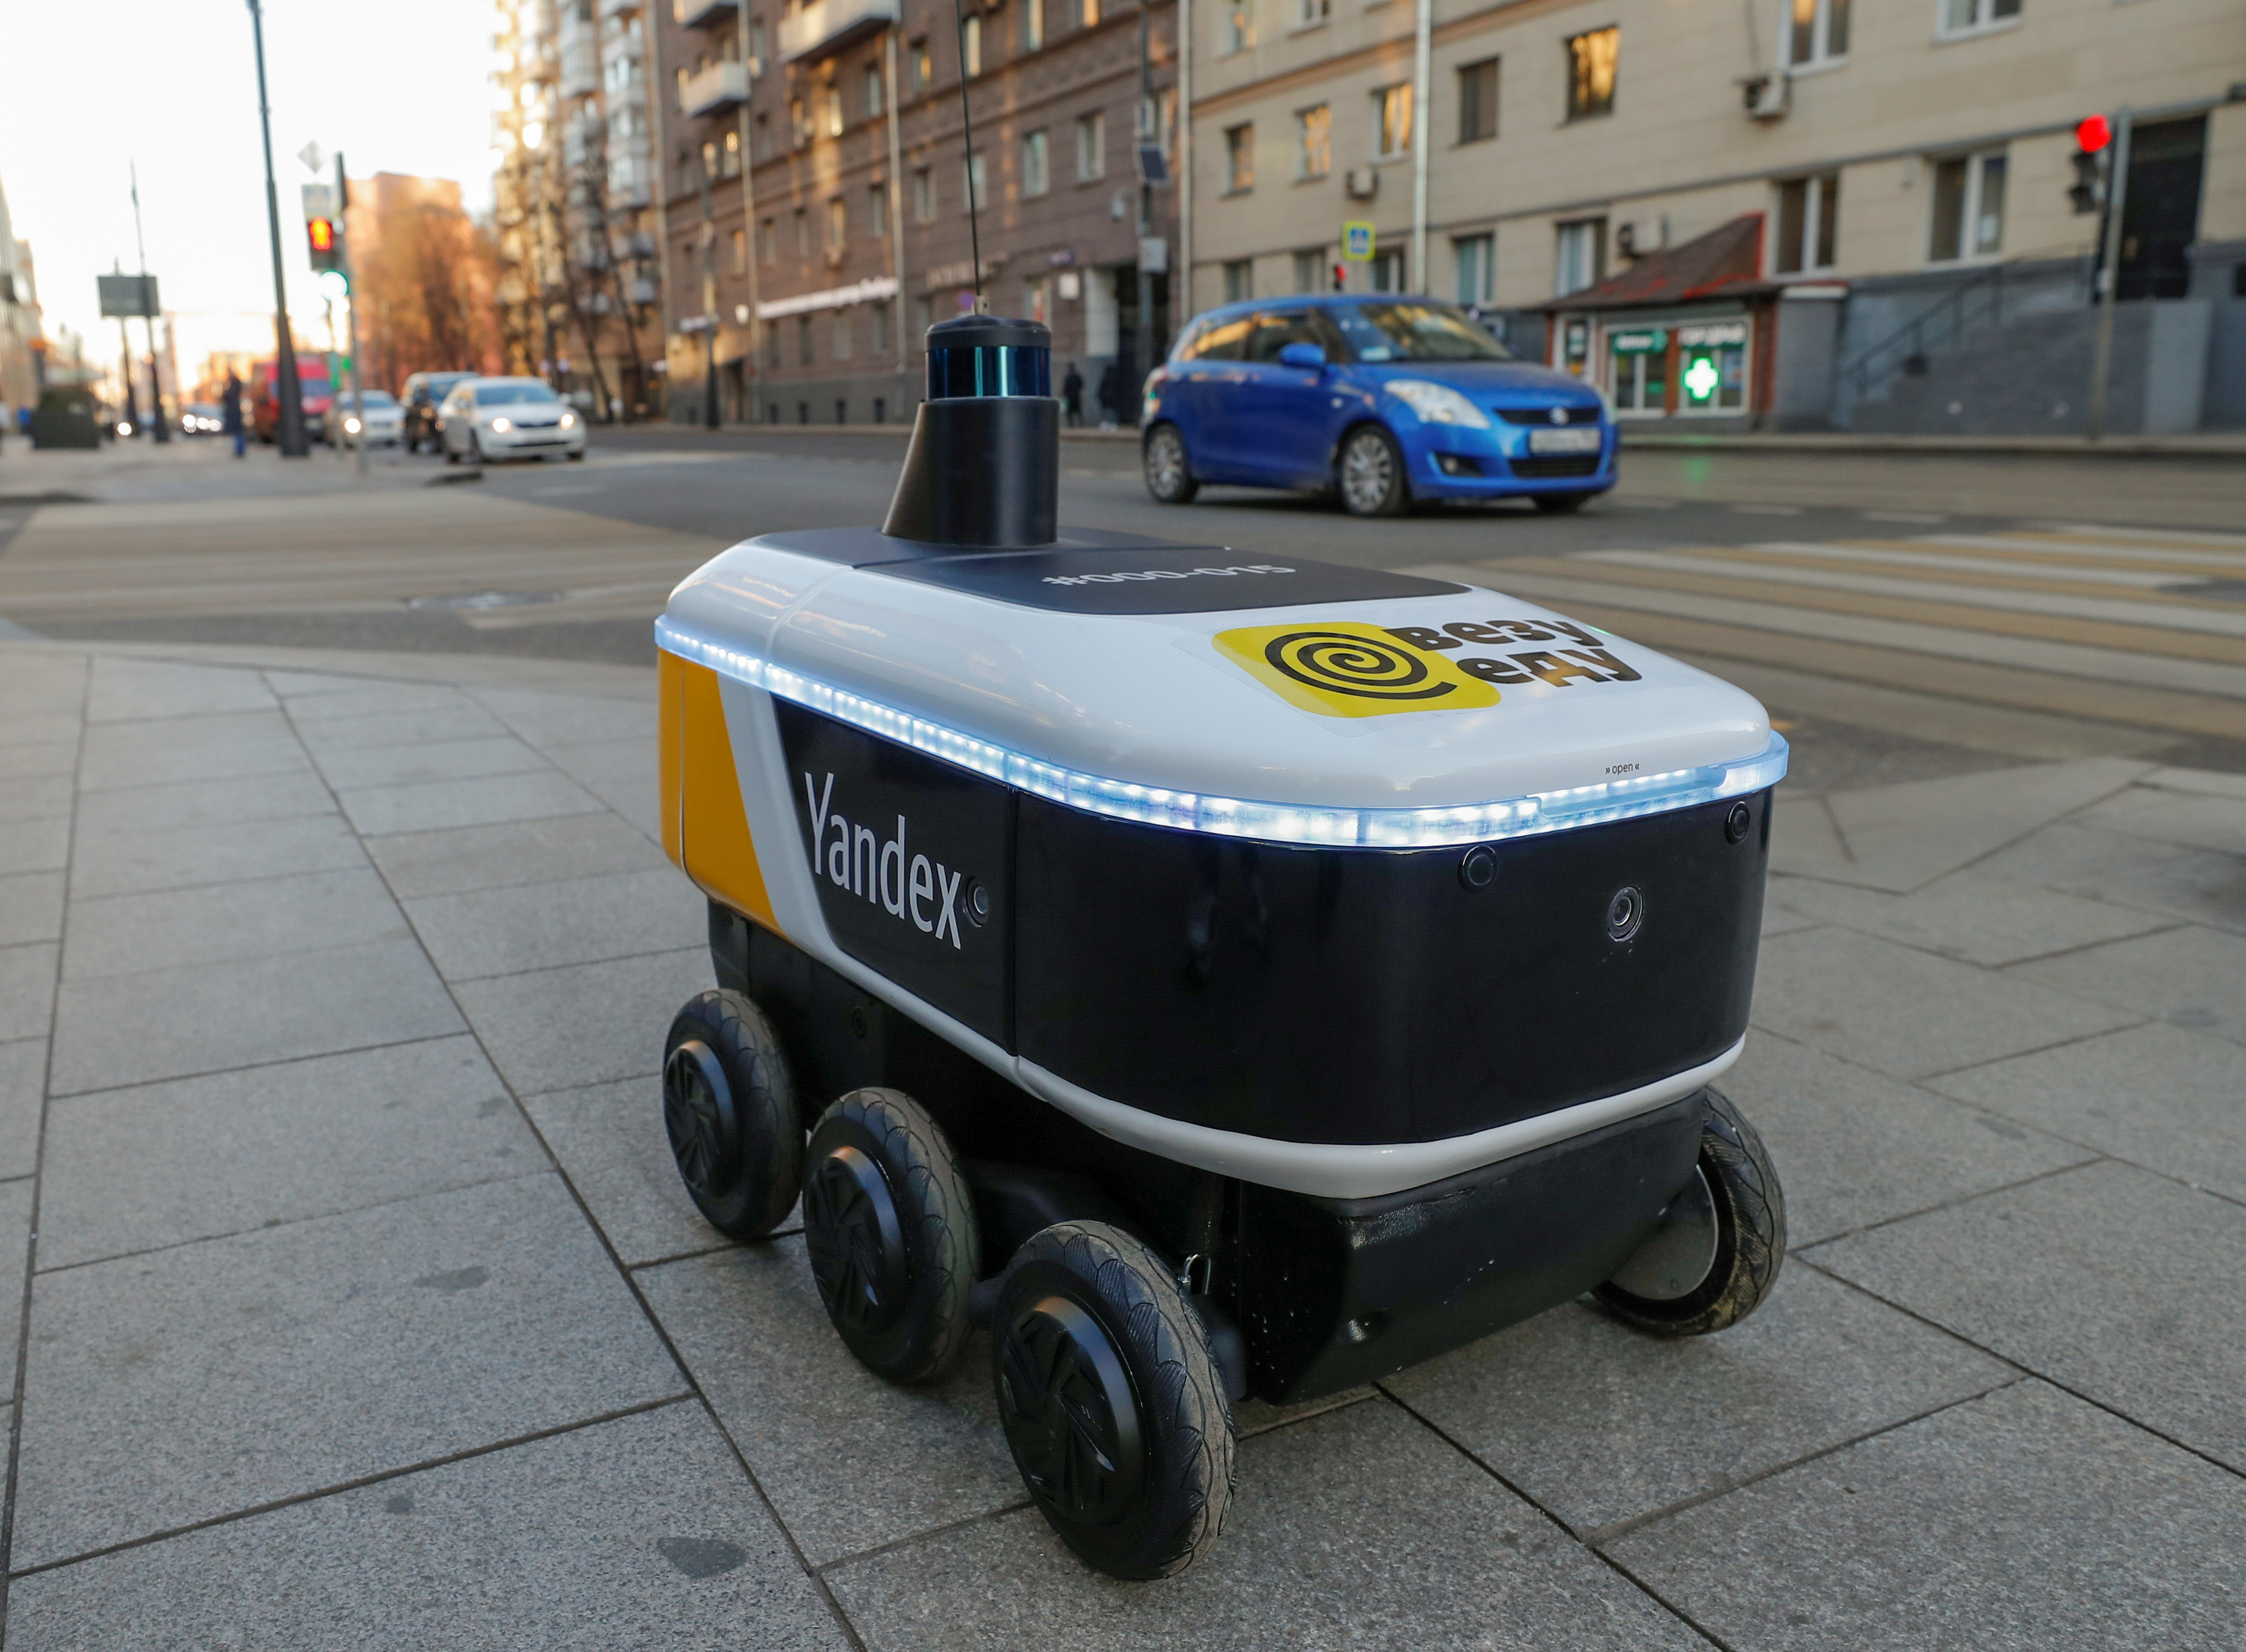 Yandex.Rover, a driverless robot for delivering hot restaurant meals, is seen at a business district in Moscow, Russia December 10, 2020. REUTERS/Evgenia Novozhenina/File Photo